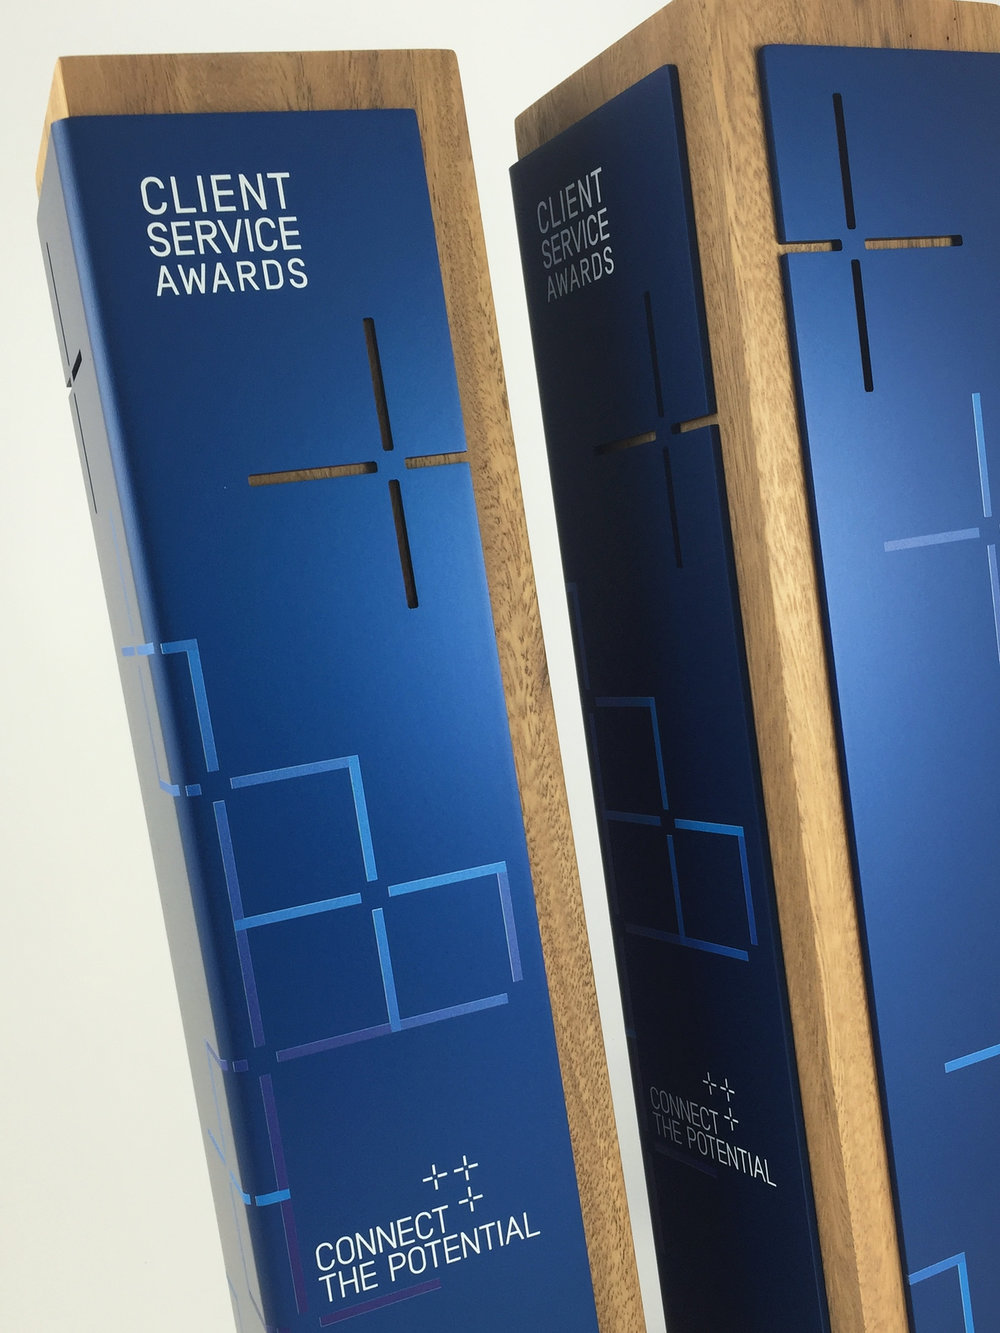 ghd-client-service-awards-metal-timber-eco-trophy-02.jpg